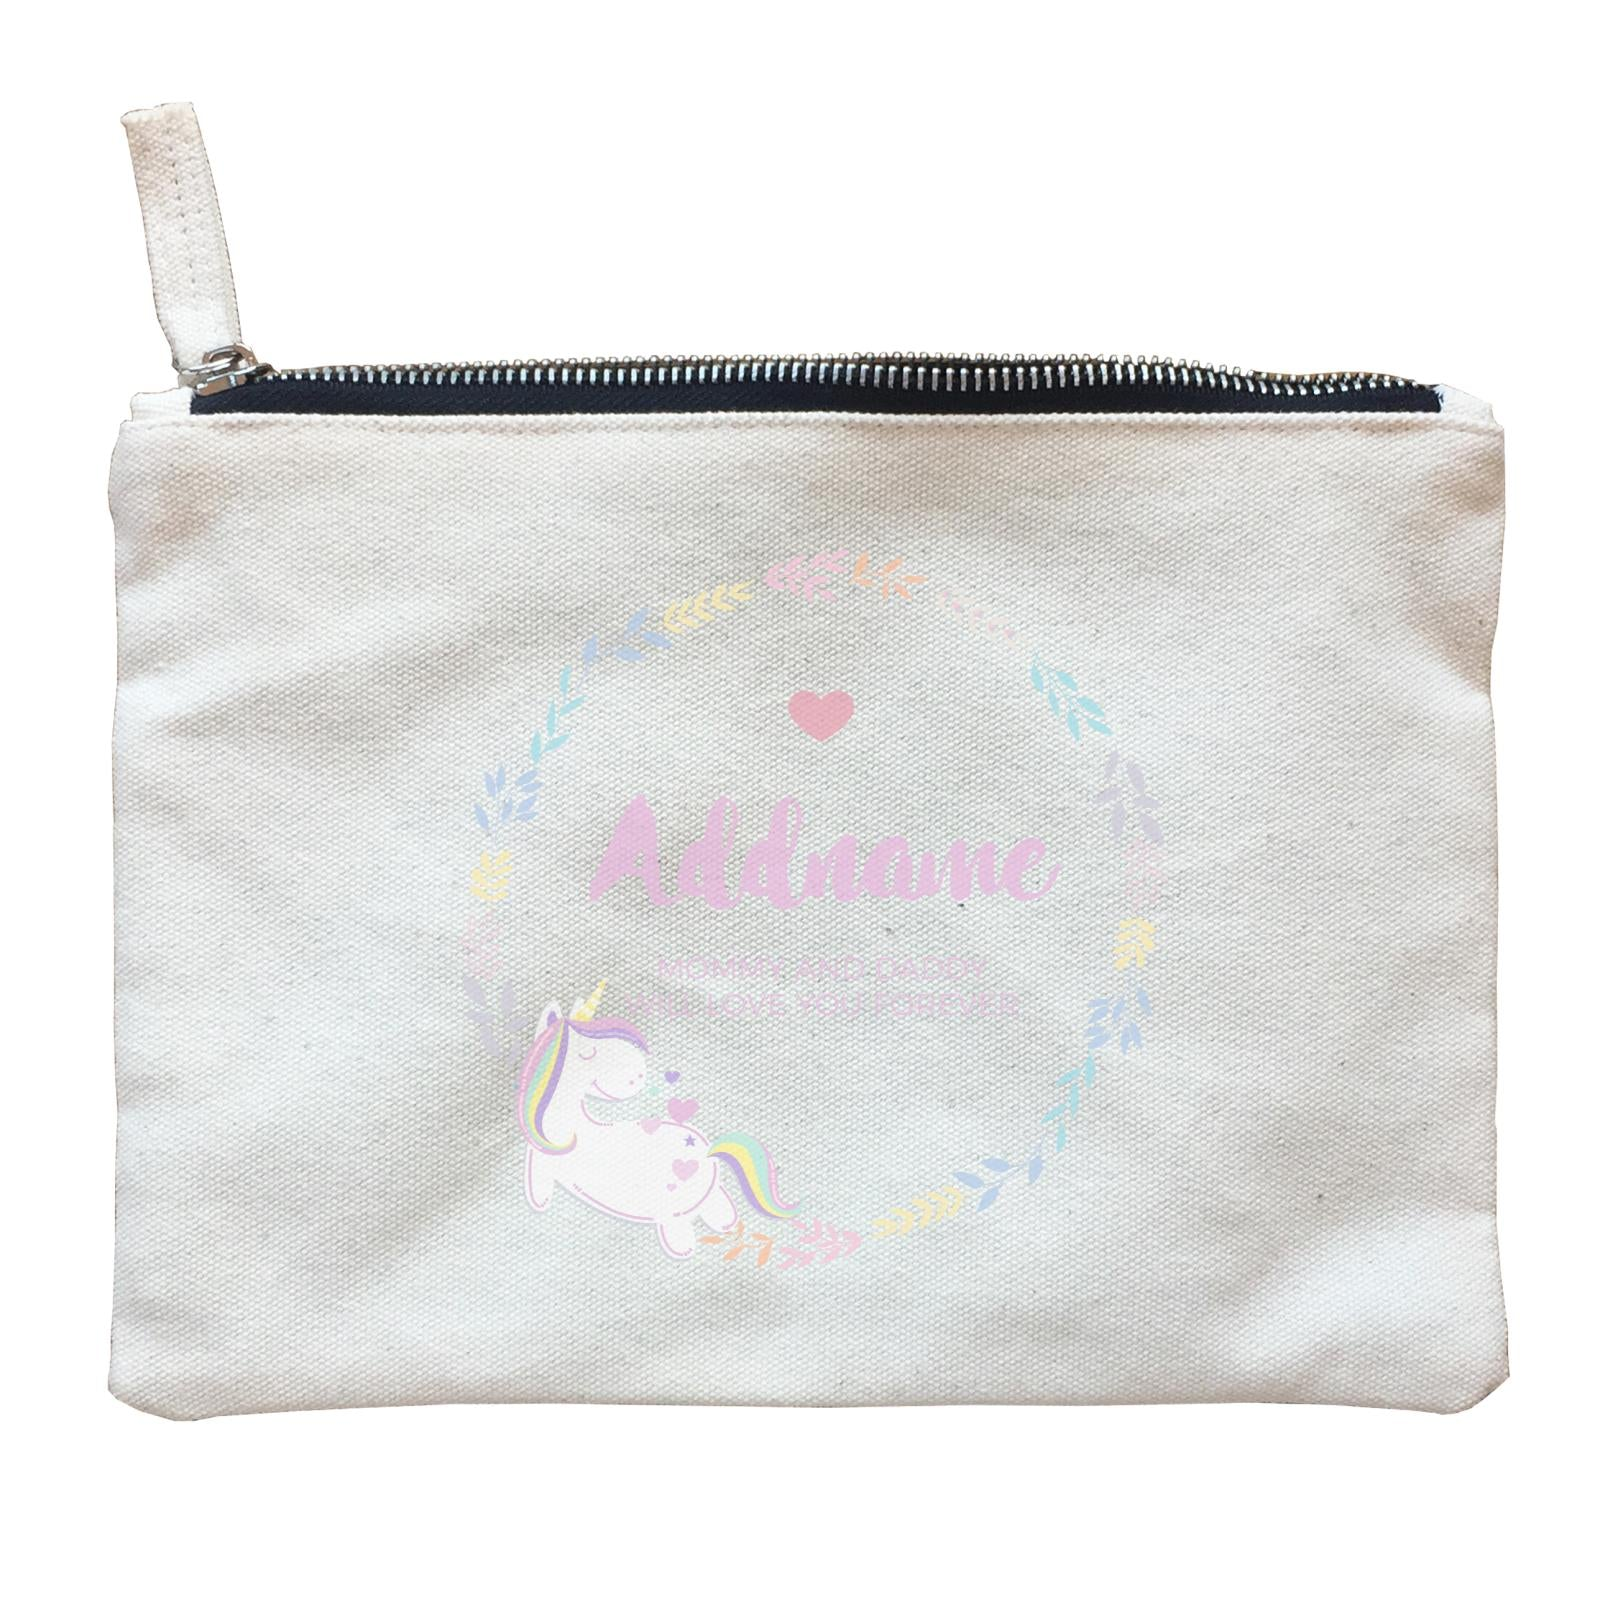 Pastel Colours Leaf Wreath with Unicorn Personalizable with Name and Text Zipper Pouch